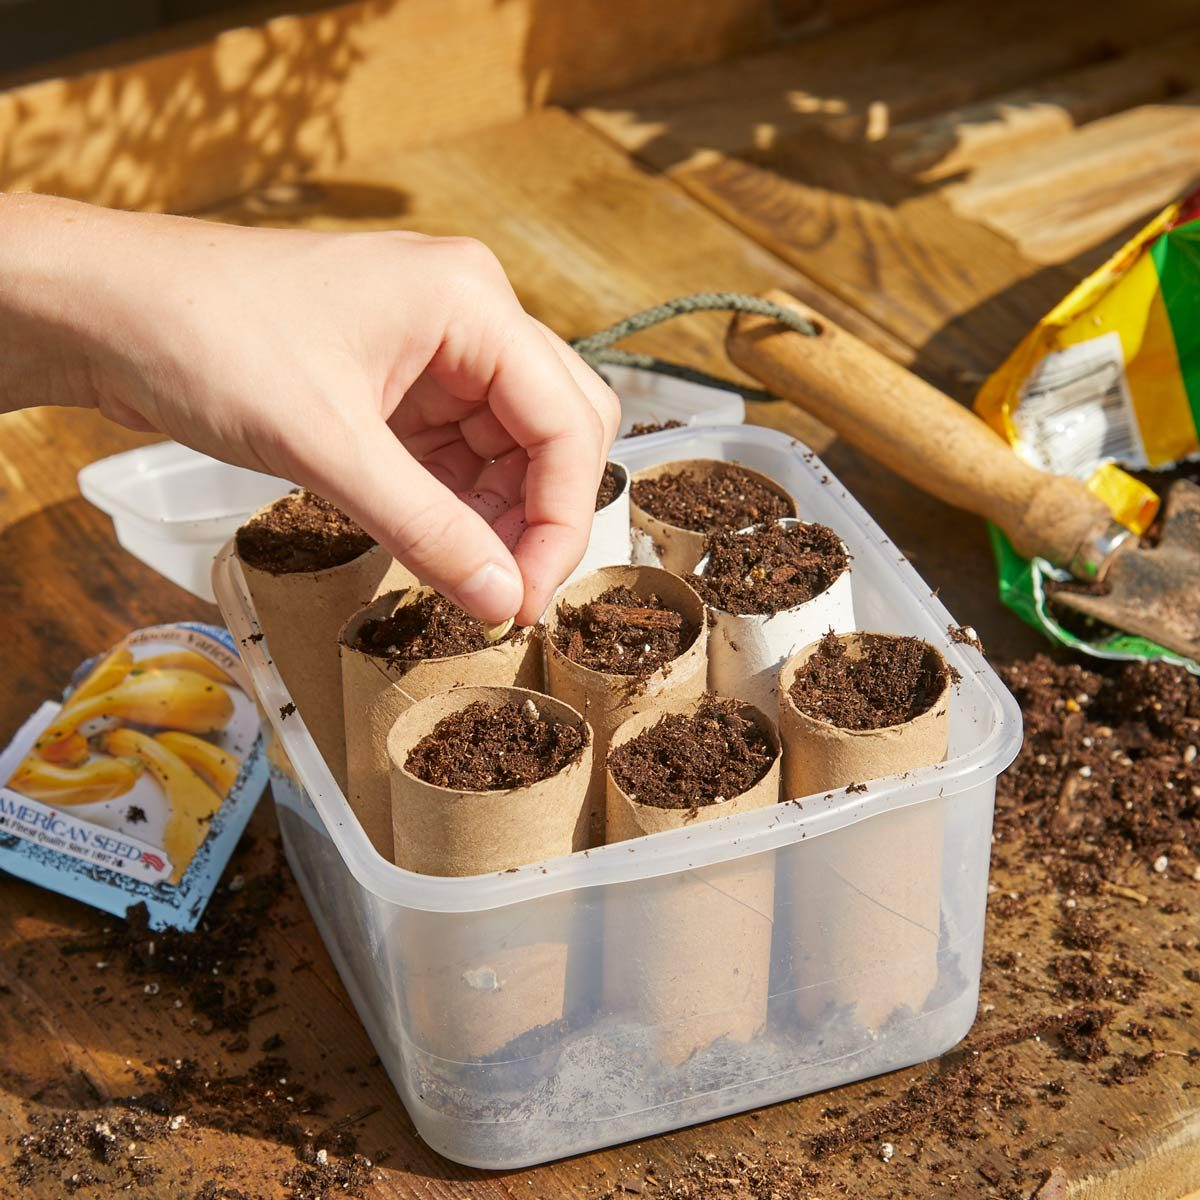 HH Handy Hint Plant seeds in toilet paper tubes